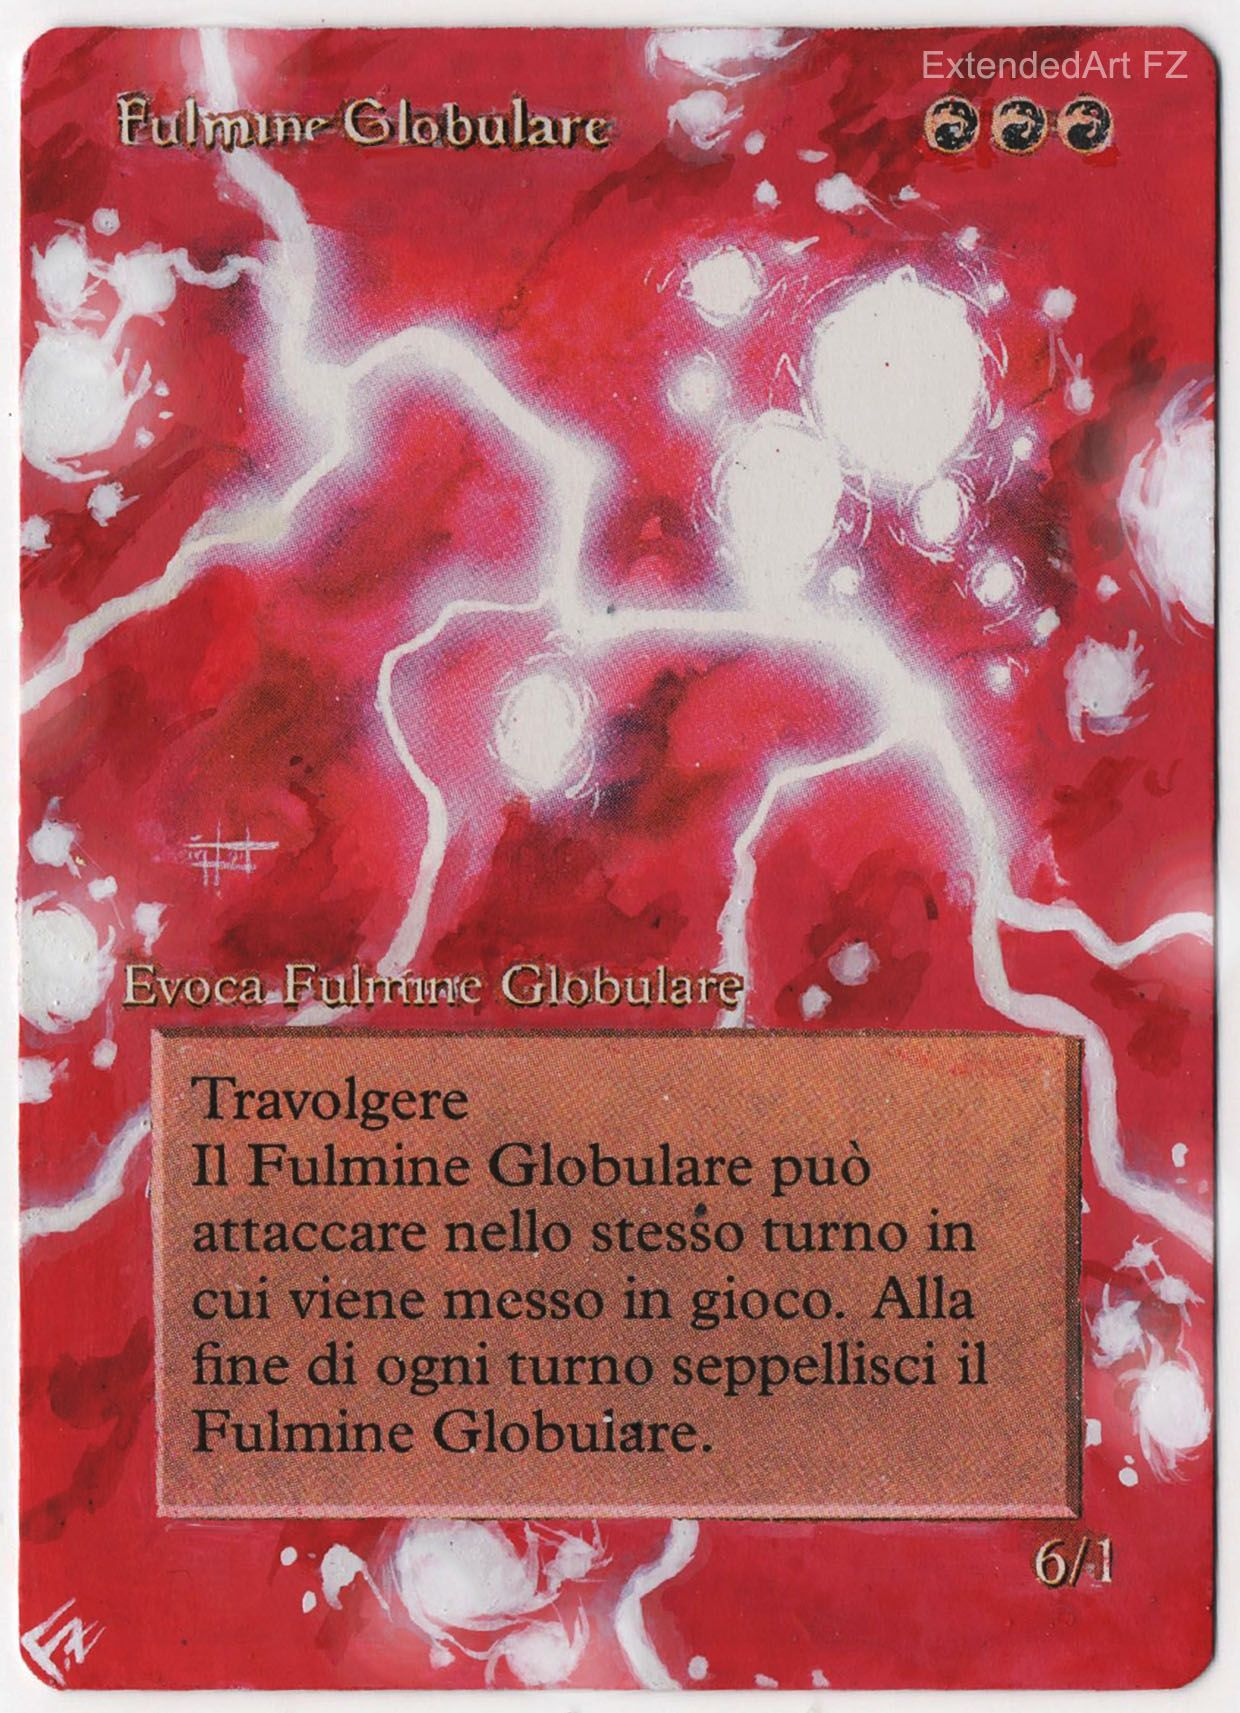 ball lightning by fz magic the gathering altered art by fz